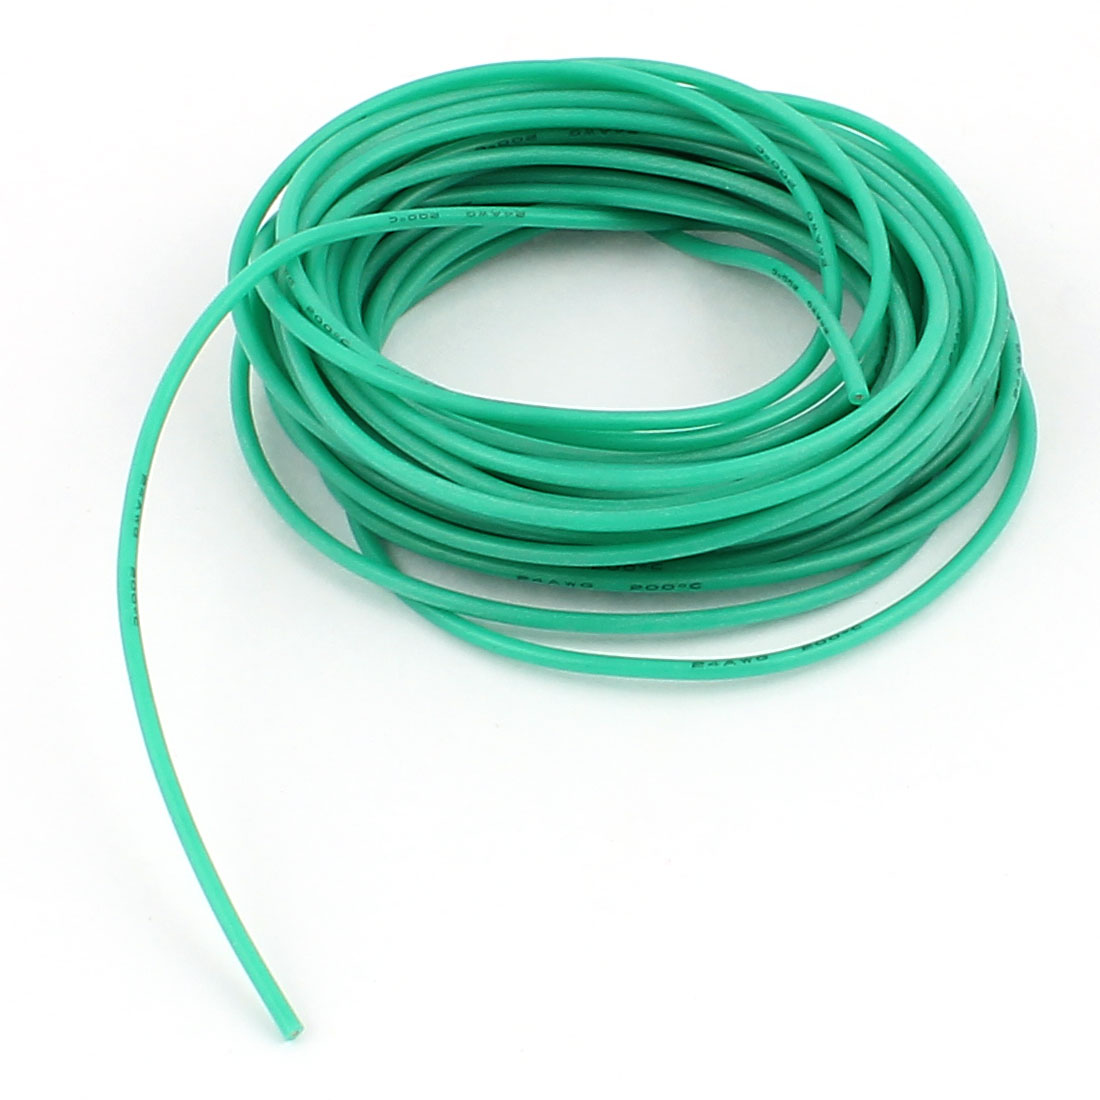 5M 24AWG Electric Copper Core Flexible Silicone Wire Cable Green